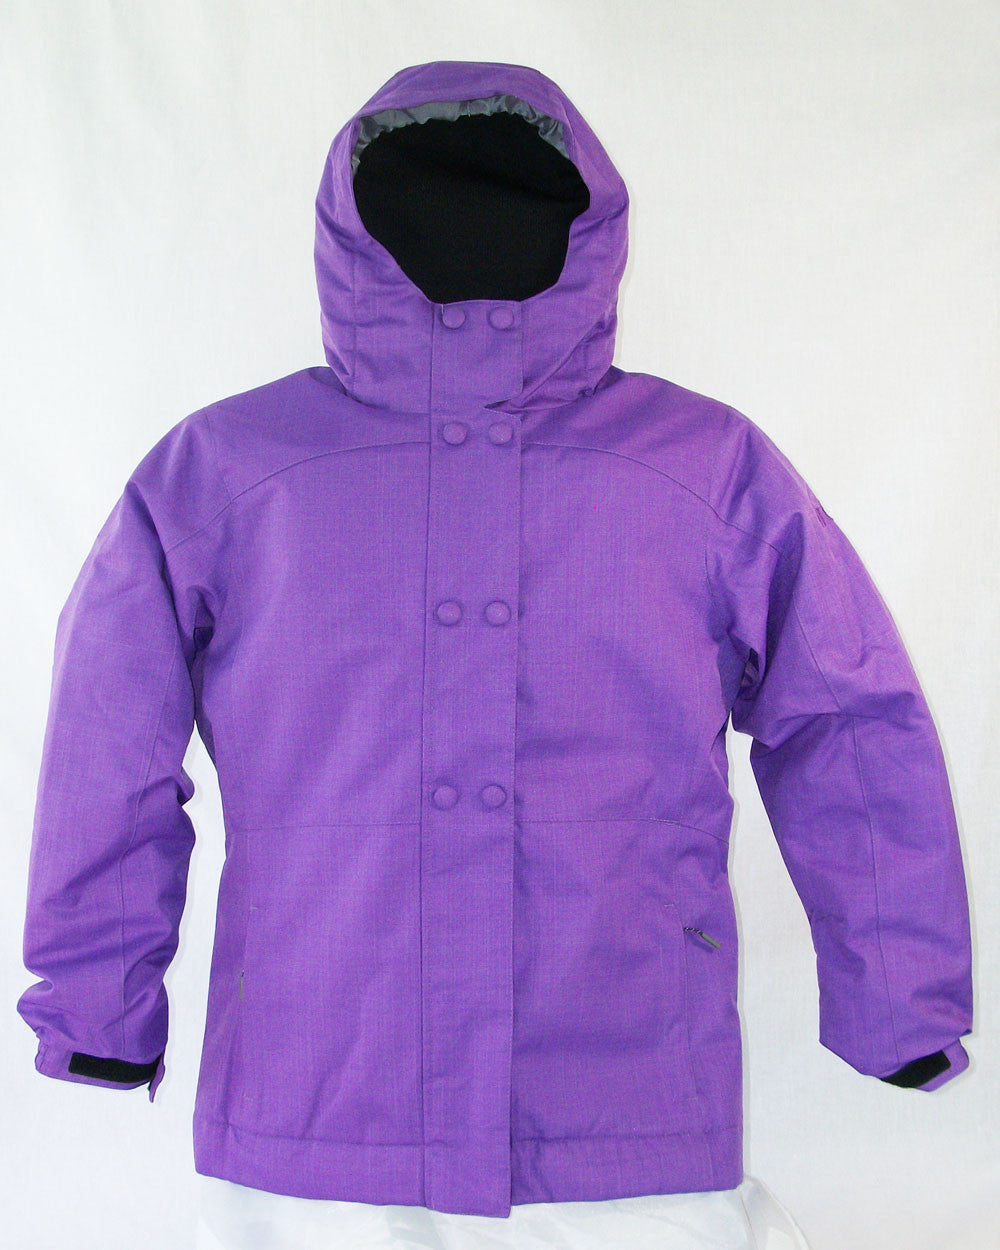 M3 Star Girls Snowboard Ski Jacket Roy Lilac Medium